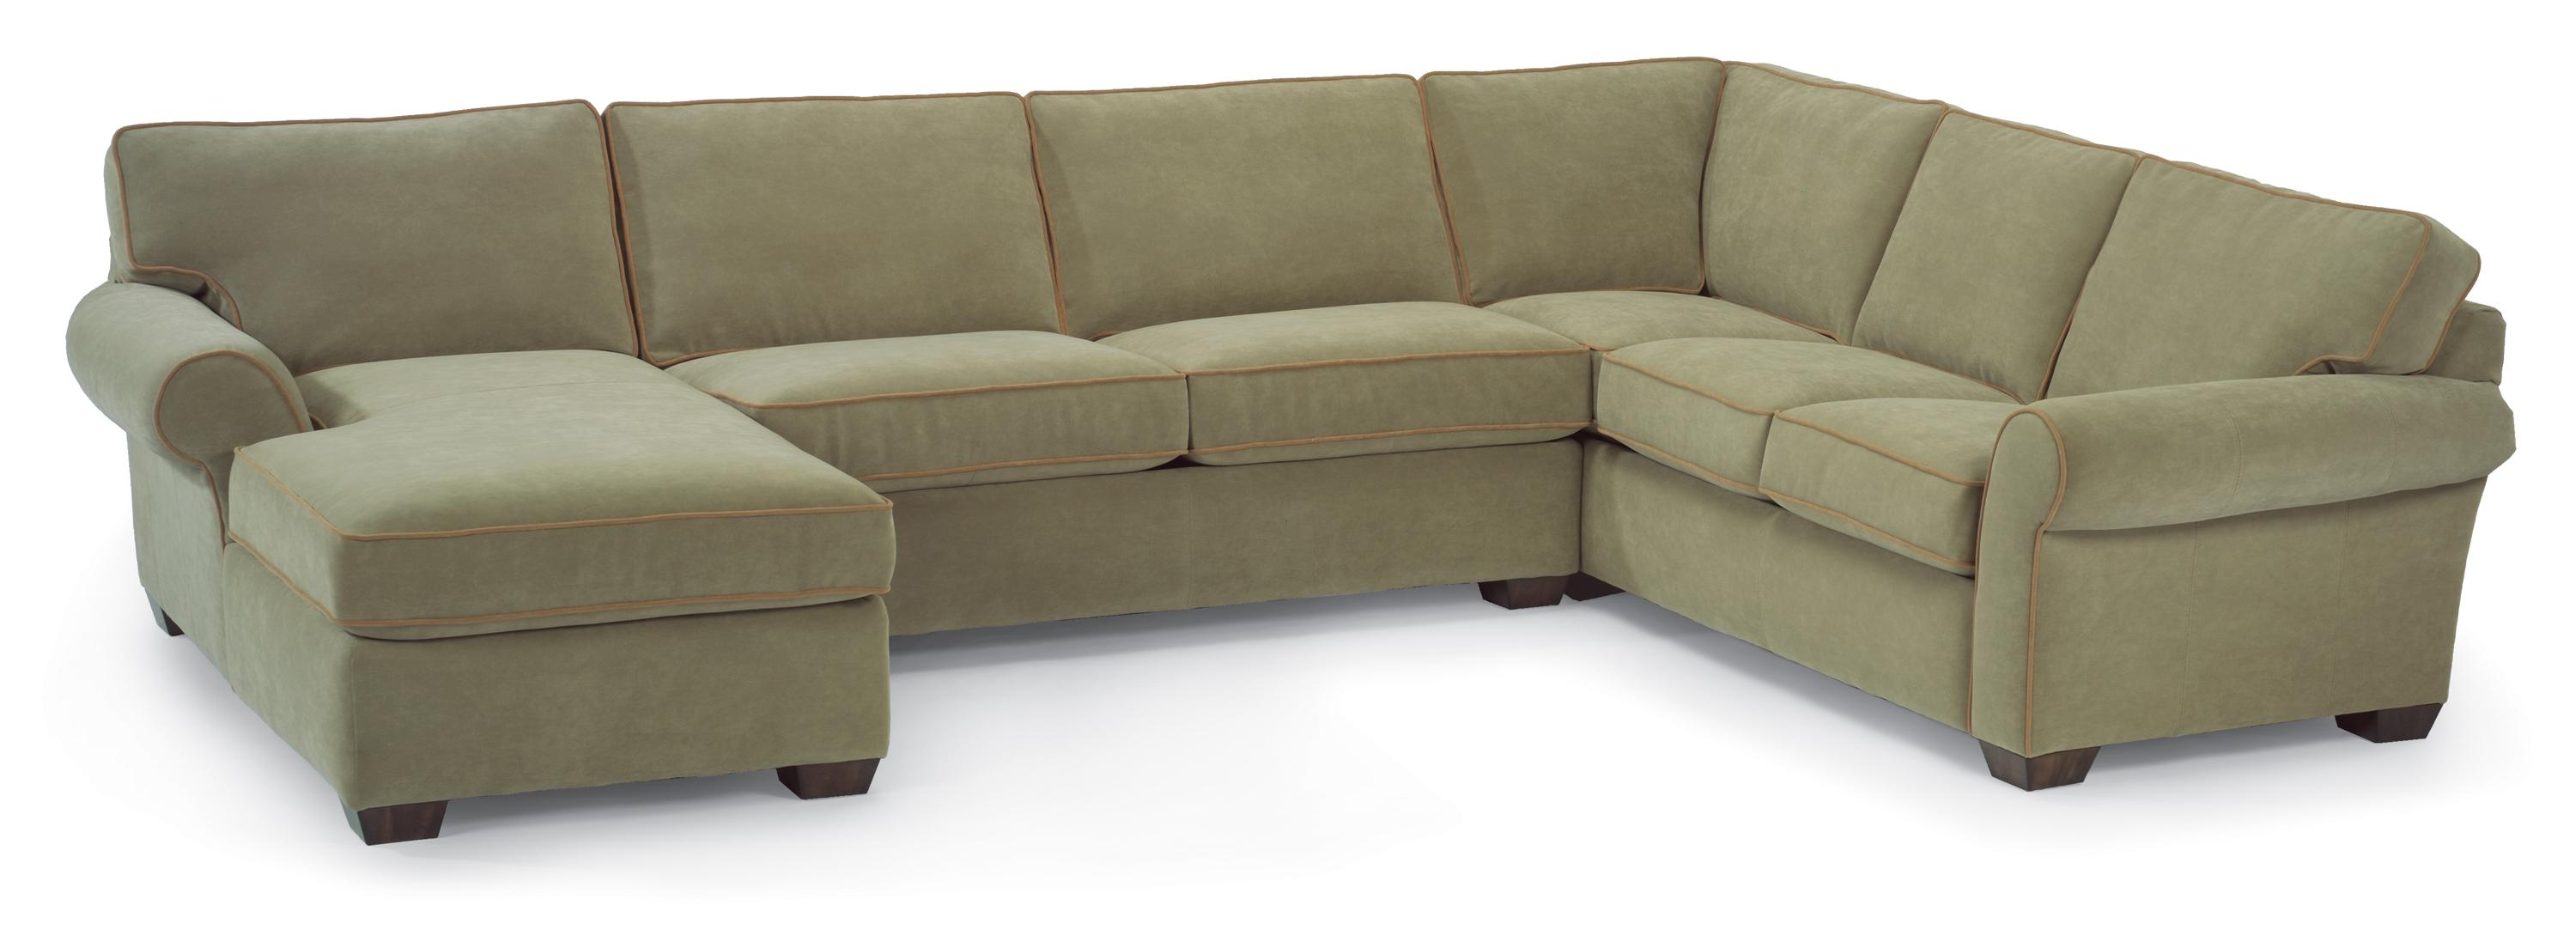 Flexsteel vail stationary sectional sofa with left side for Flexsteel sectional sofa with chaise